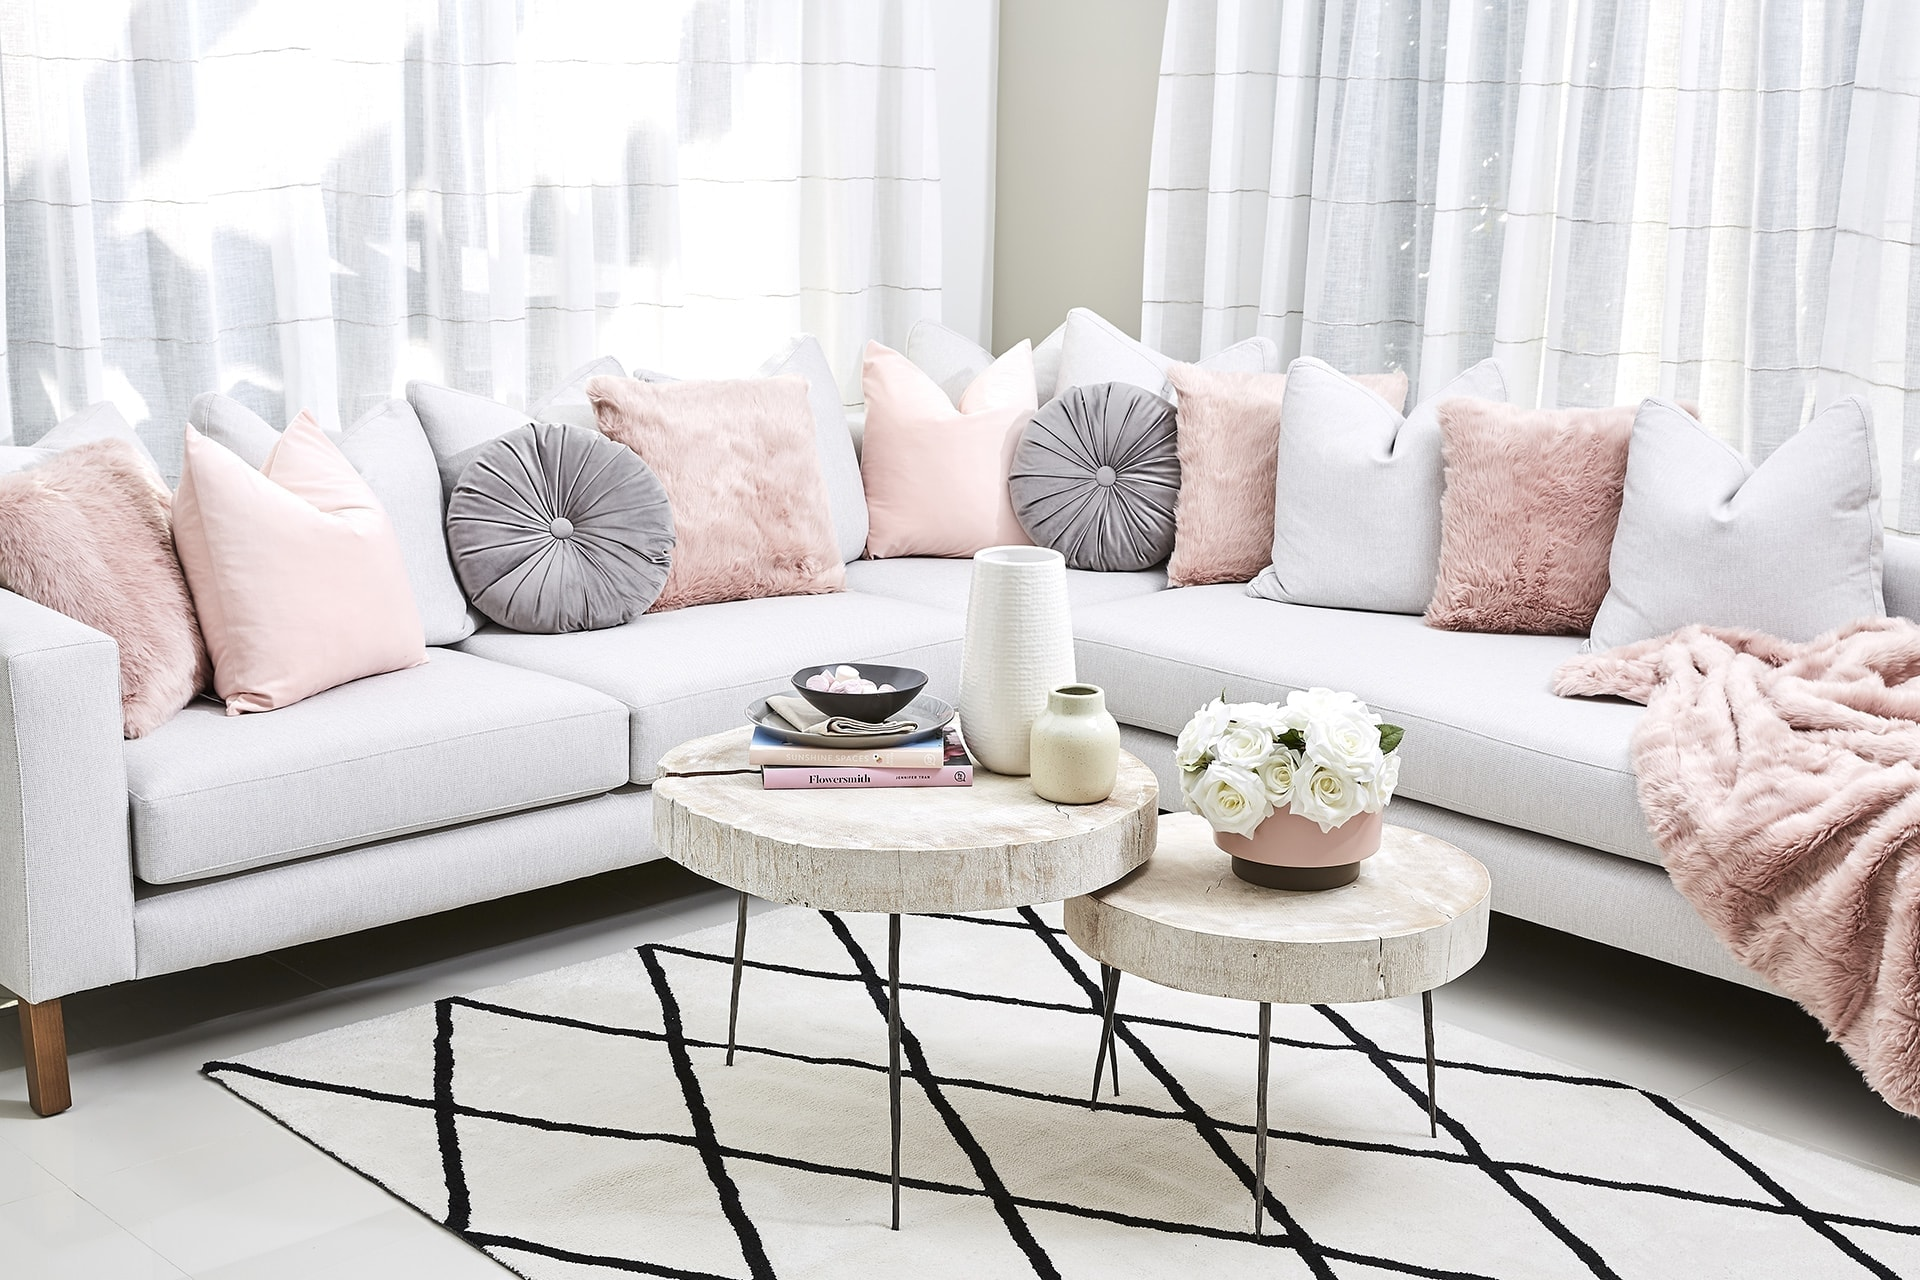 pink and grey sofa styling ideas using lorraine lea cushions and throws